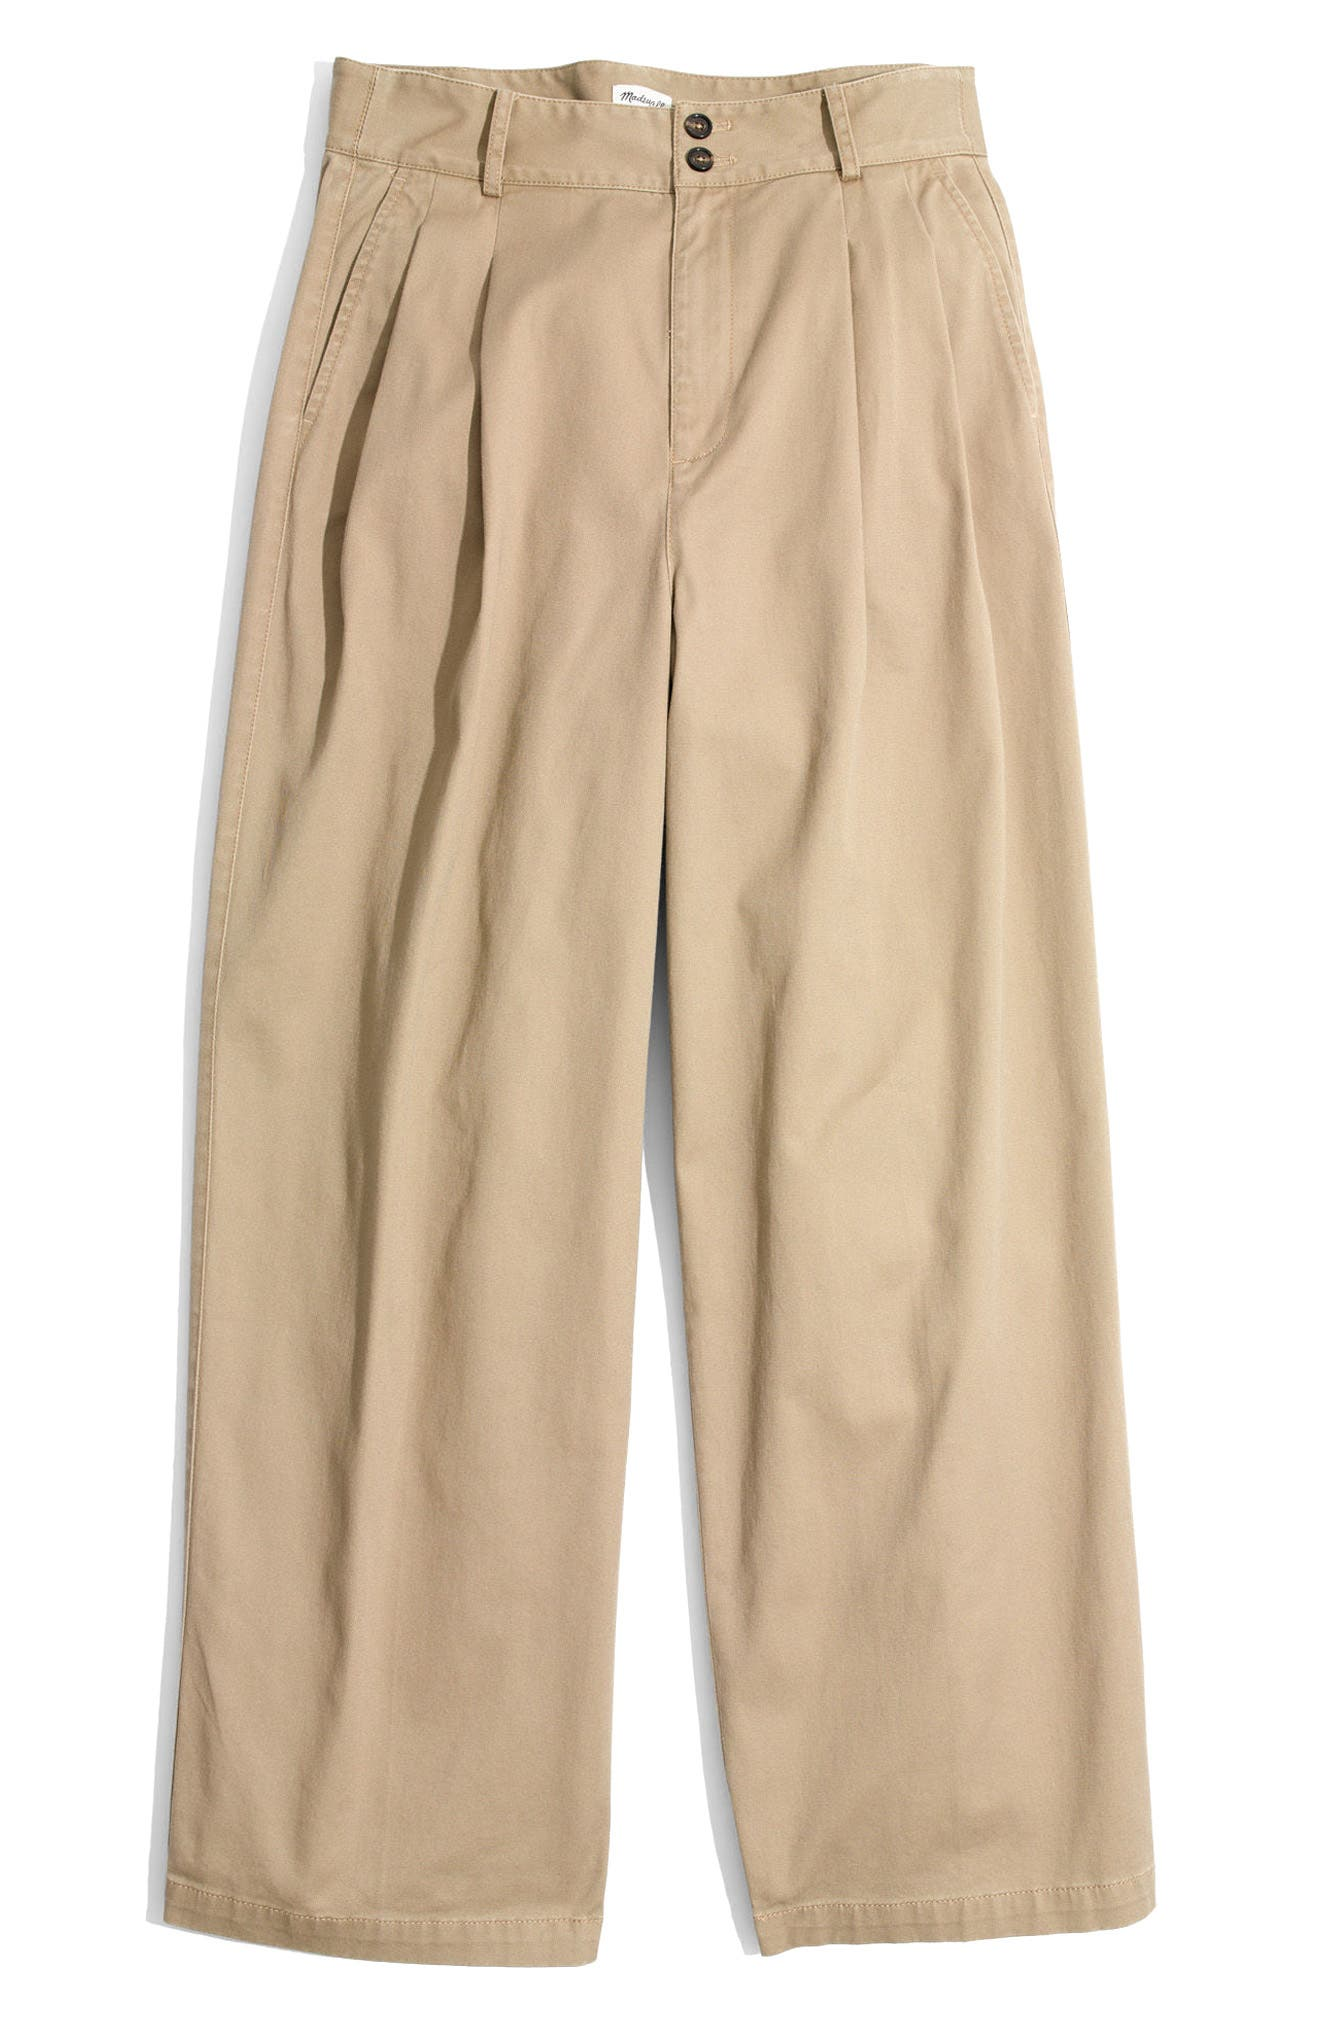 High Waist Crop Wide Leg Pants,                             Alternate thumbnail 4, color,                             250